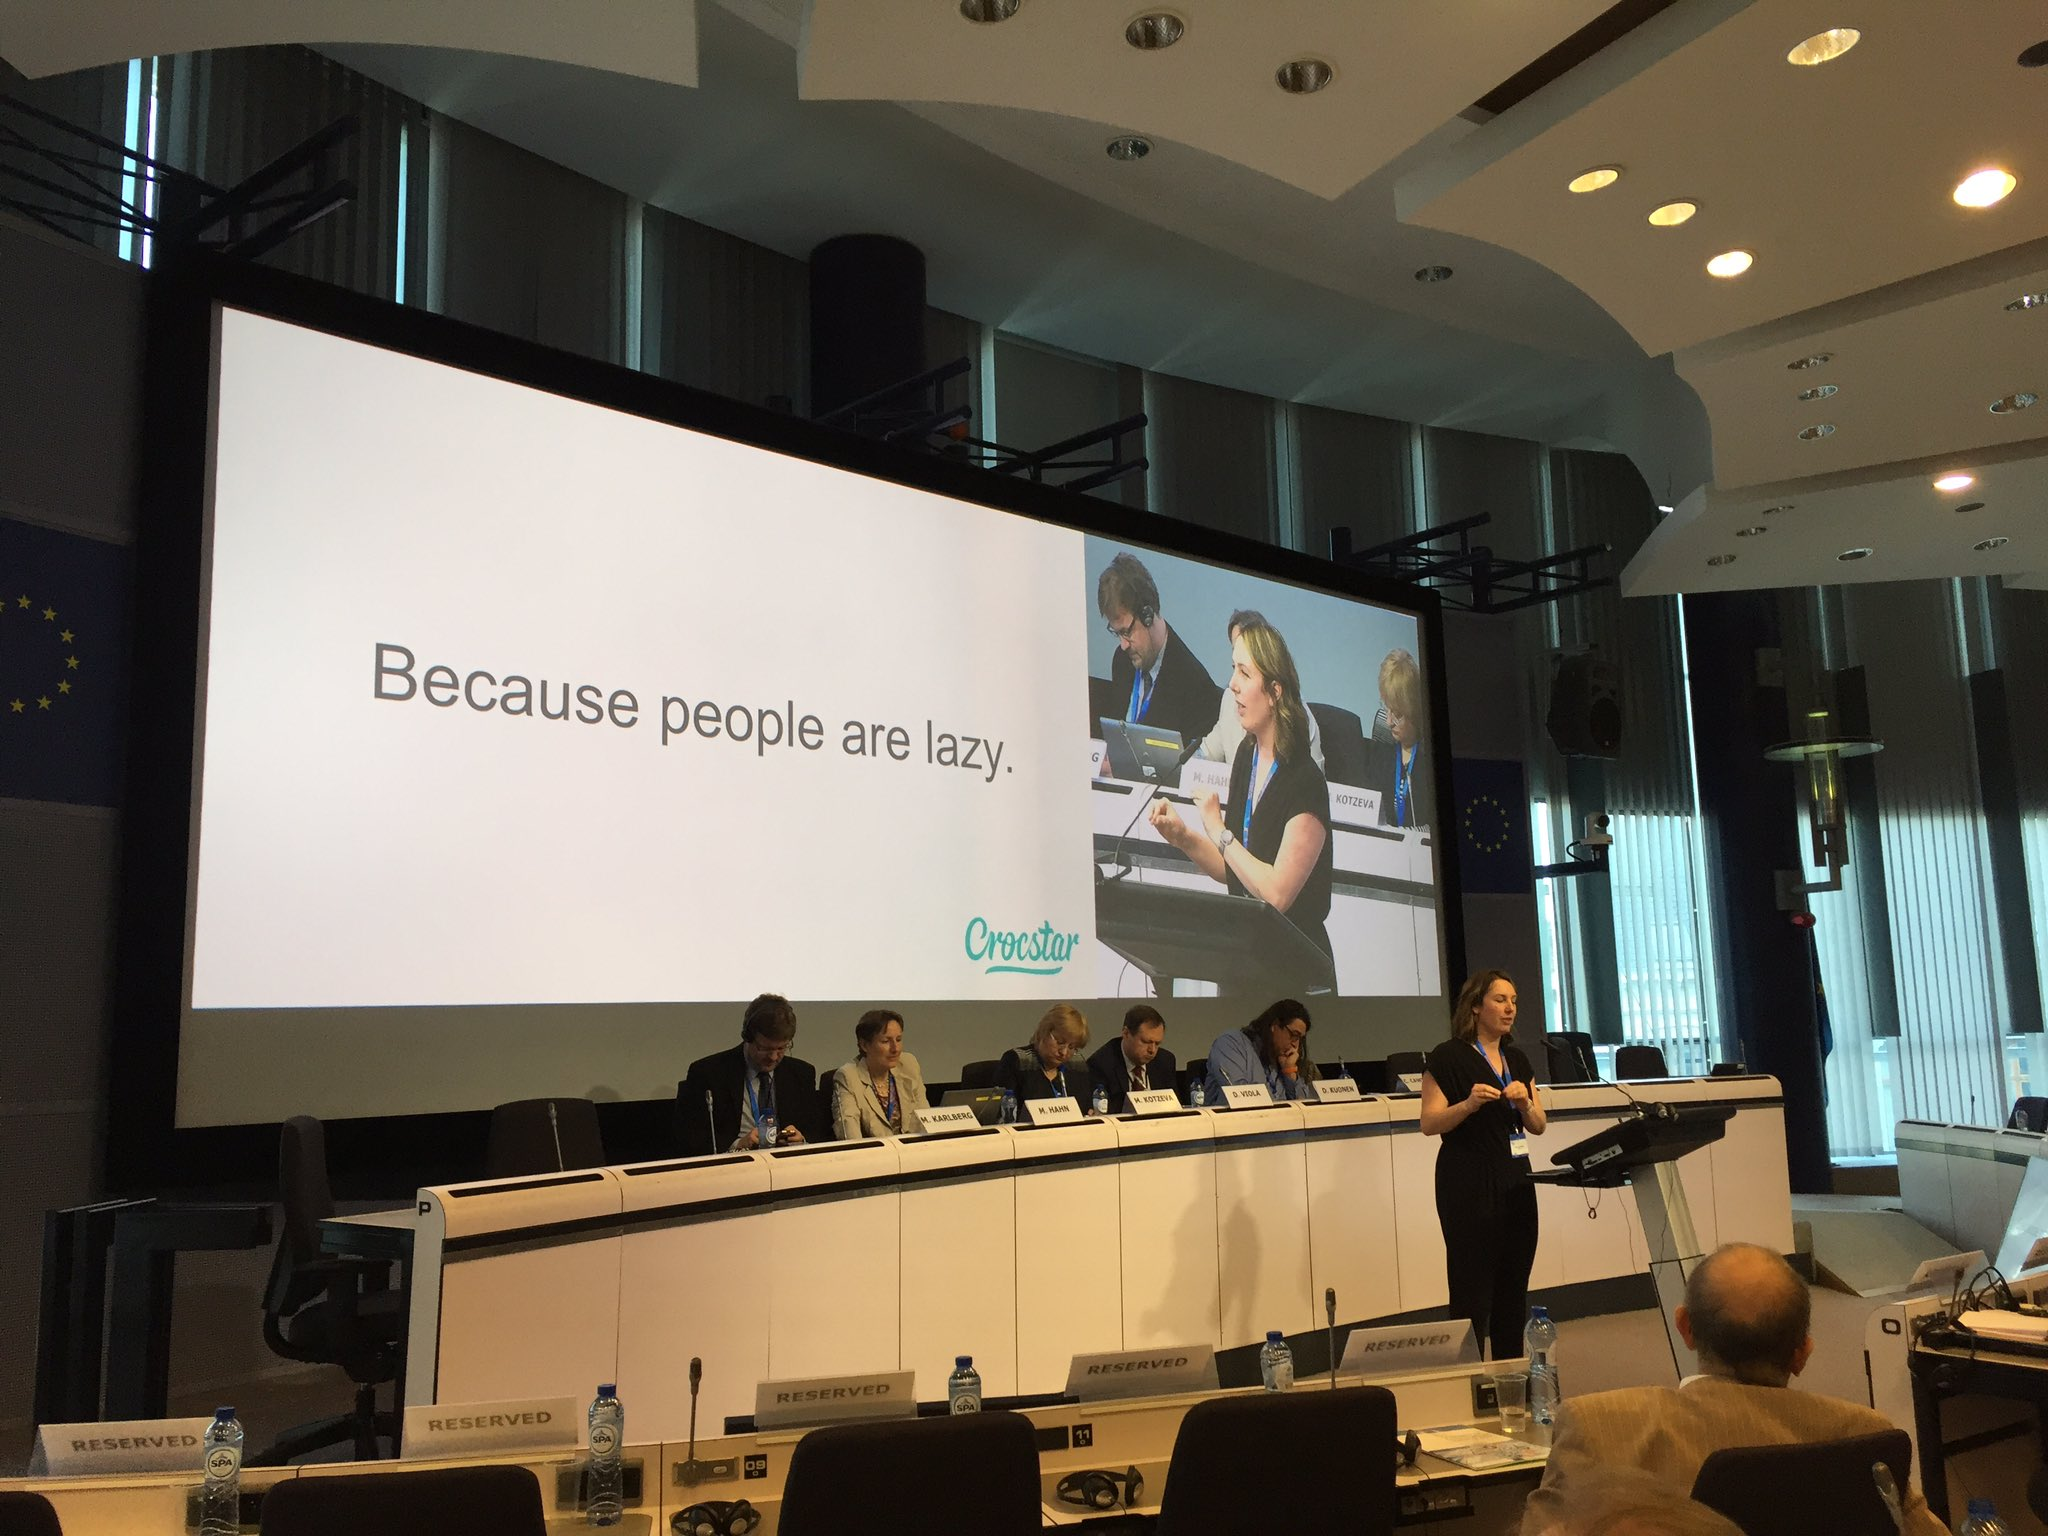 """People read ~20% of a webpage they look up. You can't rely on them to find info they need-this is your job"" @crocstar #NTTS2017 https://t.co/wlkTpgdztr"